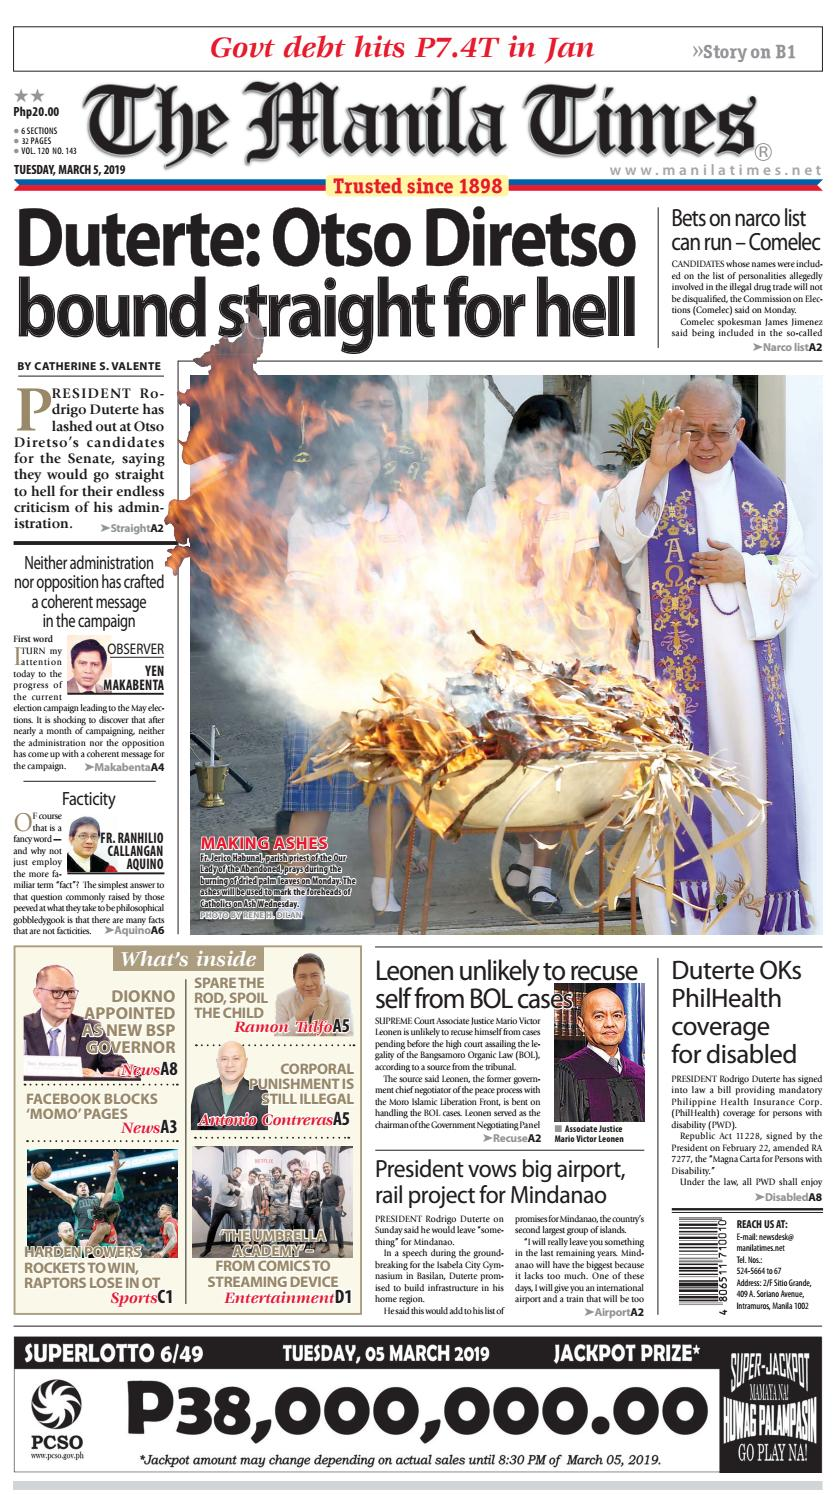 THE MANILA TIMES | MARCH 05, 2019 by The Manila Times - issuu